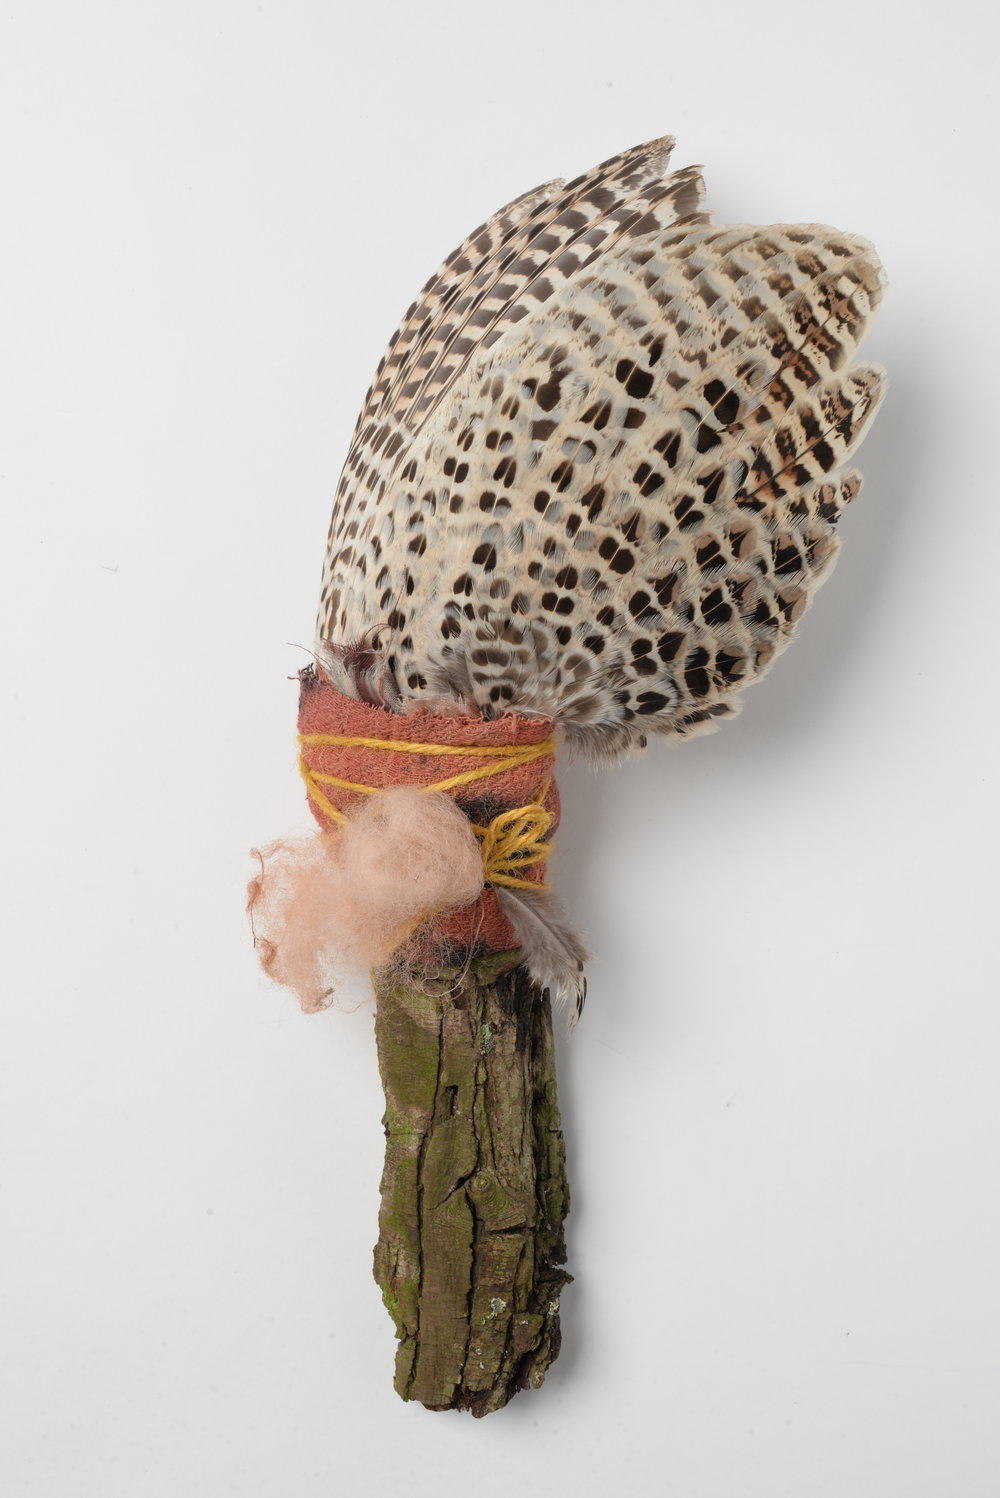 Praise Be 2,    2017 pheasant wing, wood-bark, wool, string h30cm